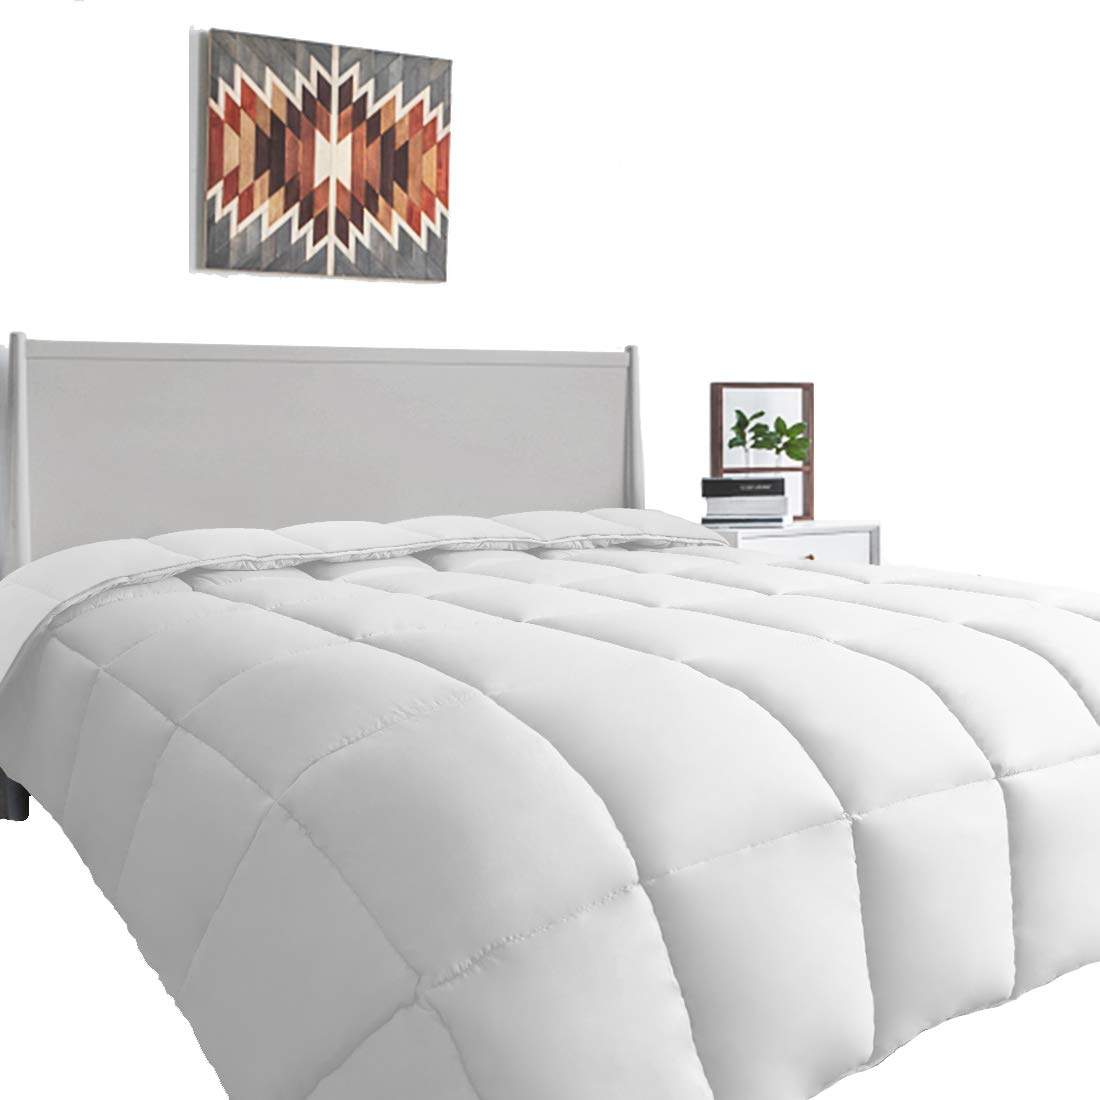 MEWAY King Comforter Soft Quilted Down Alternative - Duvet Insert with Corner Tabs - Summer Cooling - Luxury Fluffy Reversible Hotel Collection - Hypoallergenic for All Season